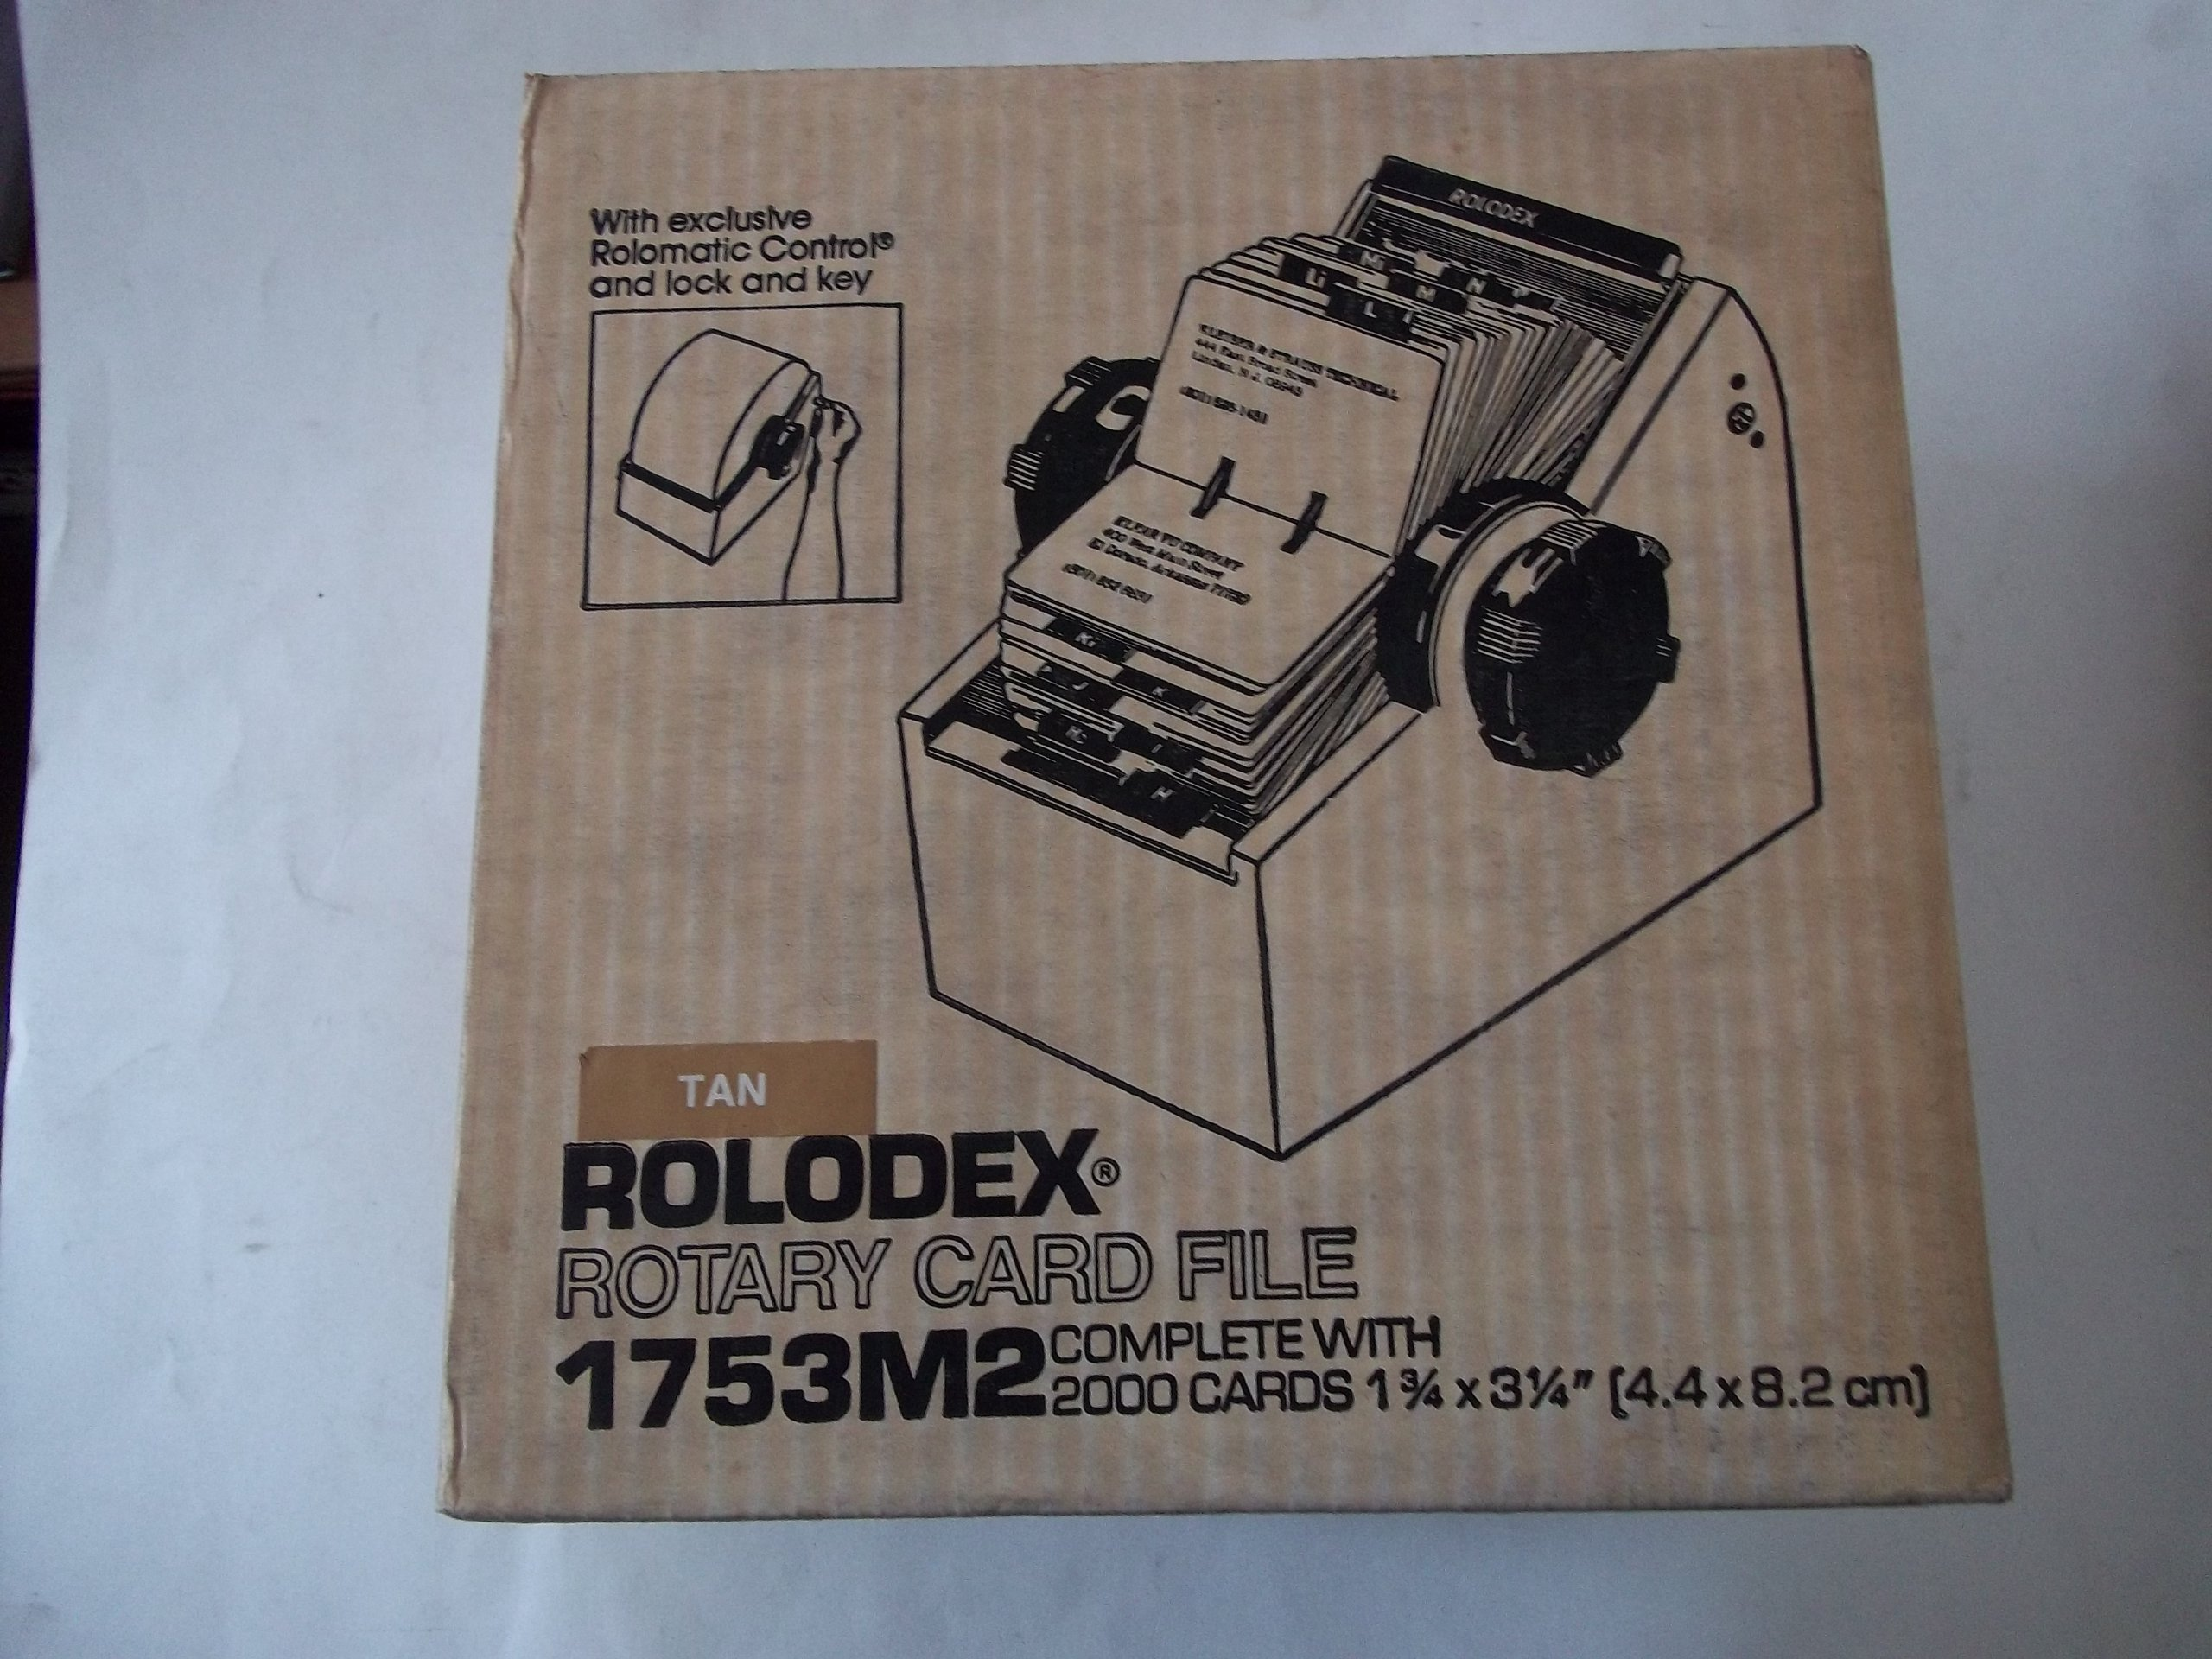 Rolodex 1753M2 Tan Rotary Card File with 2000 Cards 1 3/4'' x 3 1/4'' (4.4 x 8.2 cm) with Lock and Key